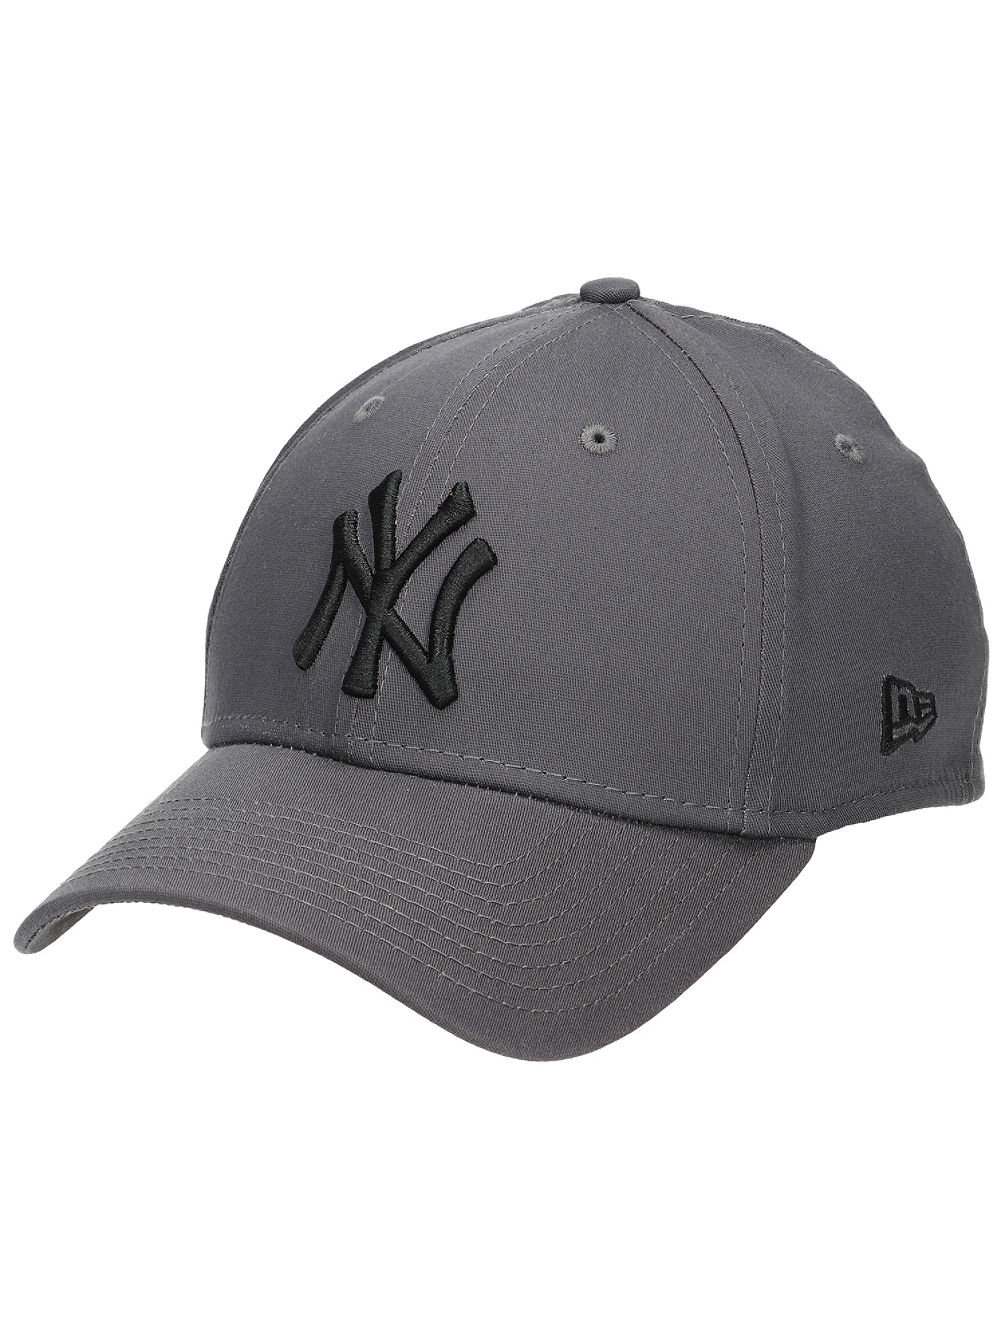 MLB League Essential 3930 Cap